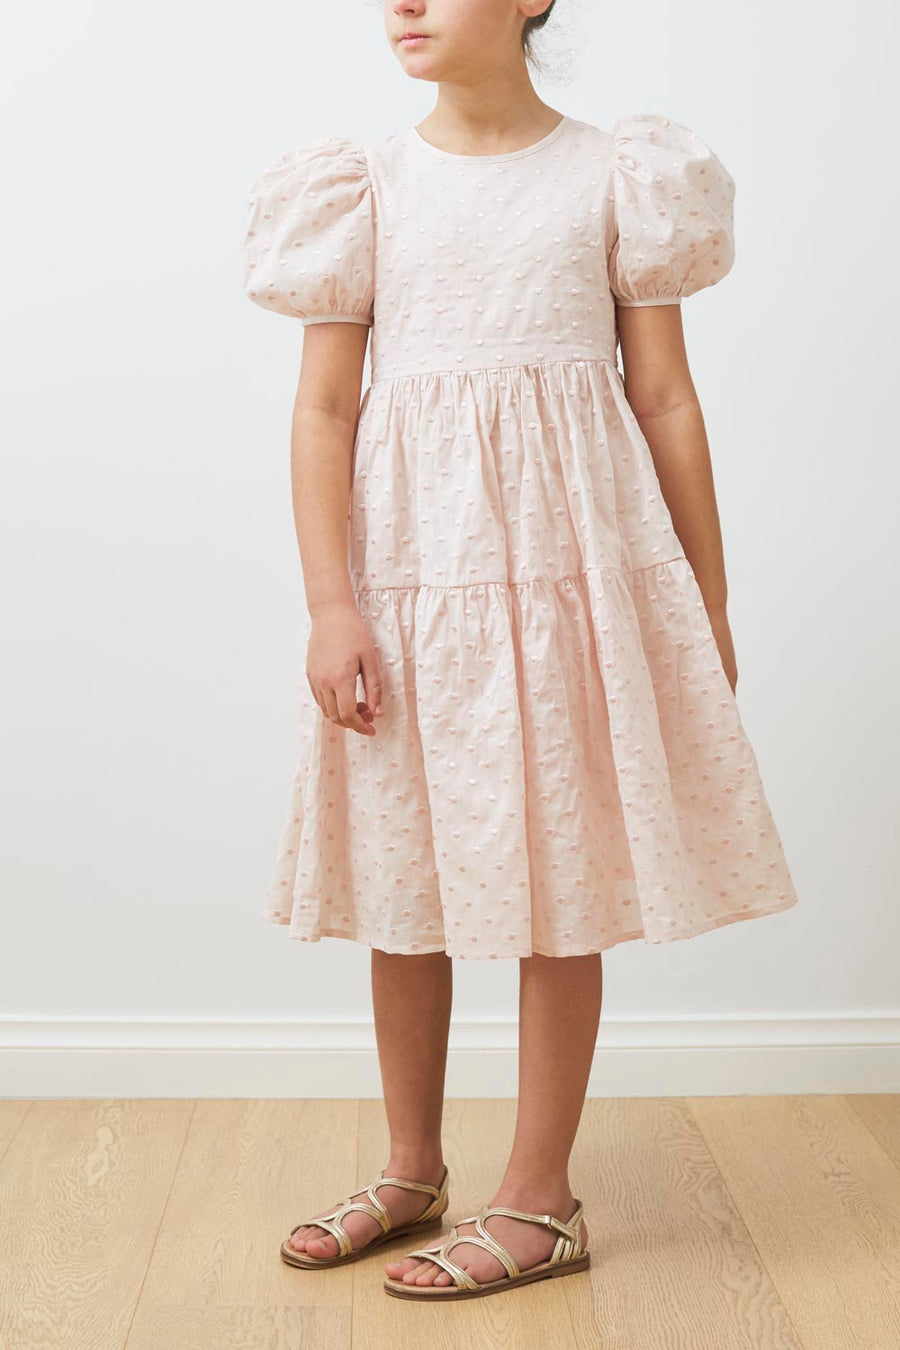 Voluminous Dress by Petite Amalie